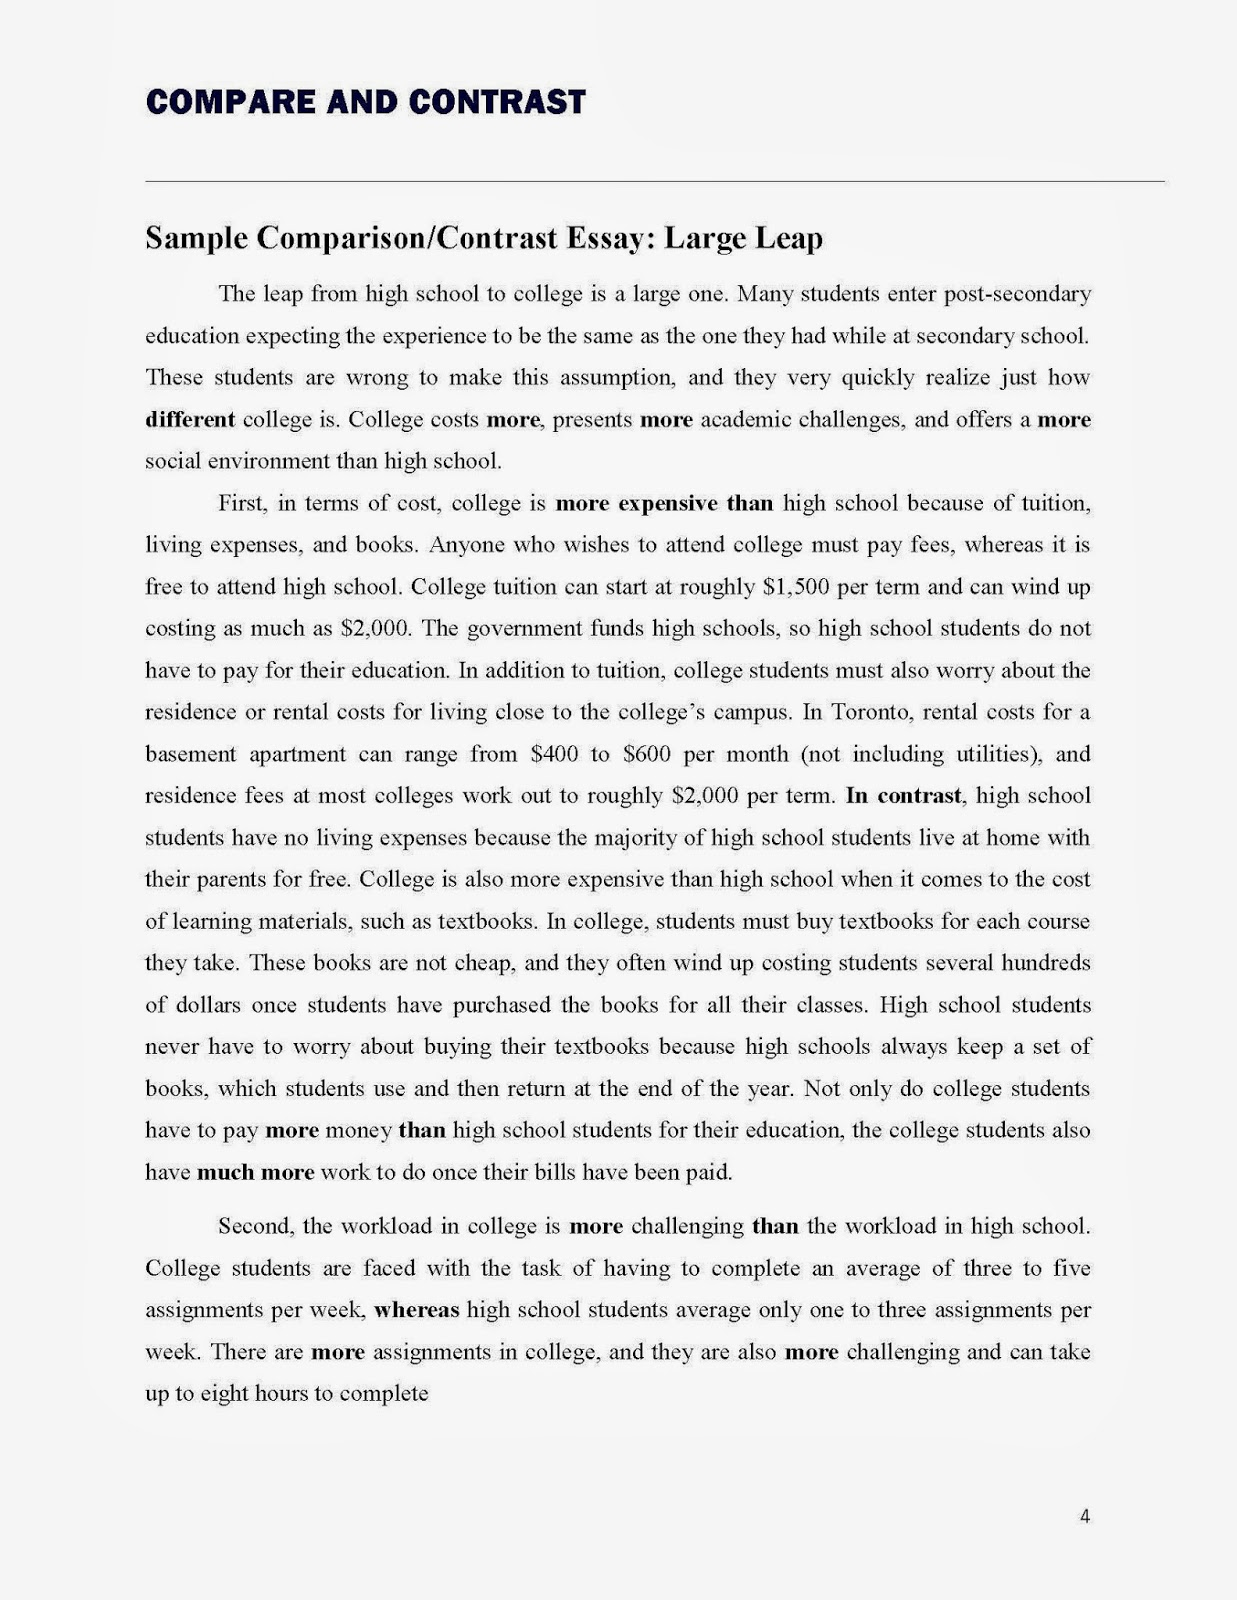 compare and contrast essay high school vs college highschool essay  compare contrast essay prompts compare contrast essay writing compare and contrast essay prompt liao ipnodns rucompare essay topics for high school